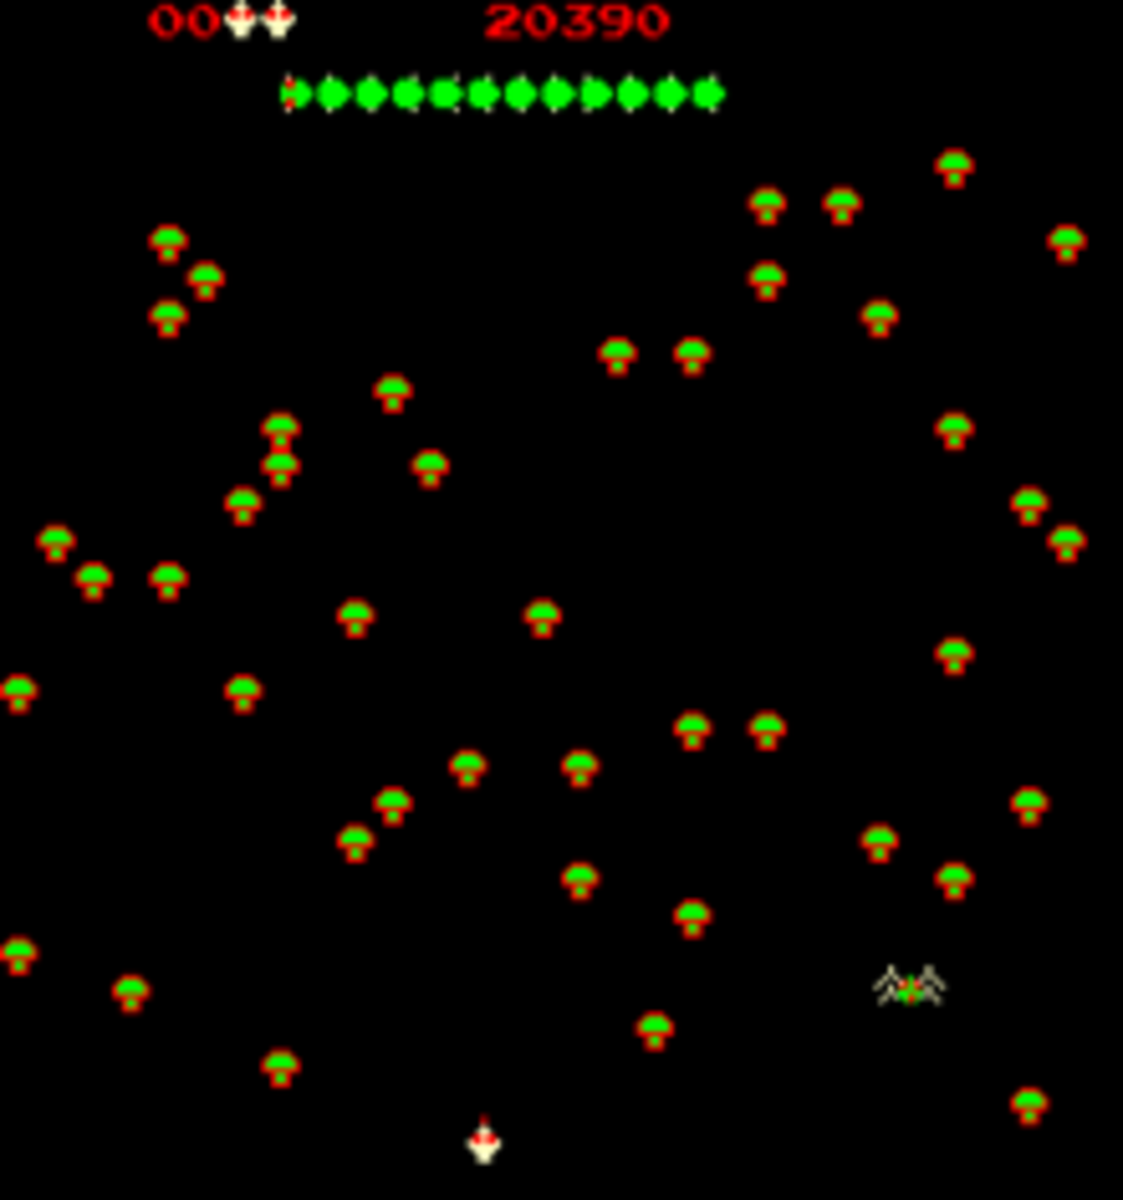 The Centipede Begins It's Descent In The Atari Arcade Game...